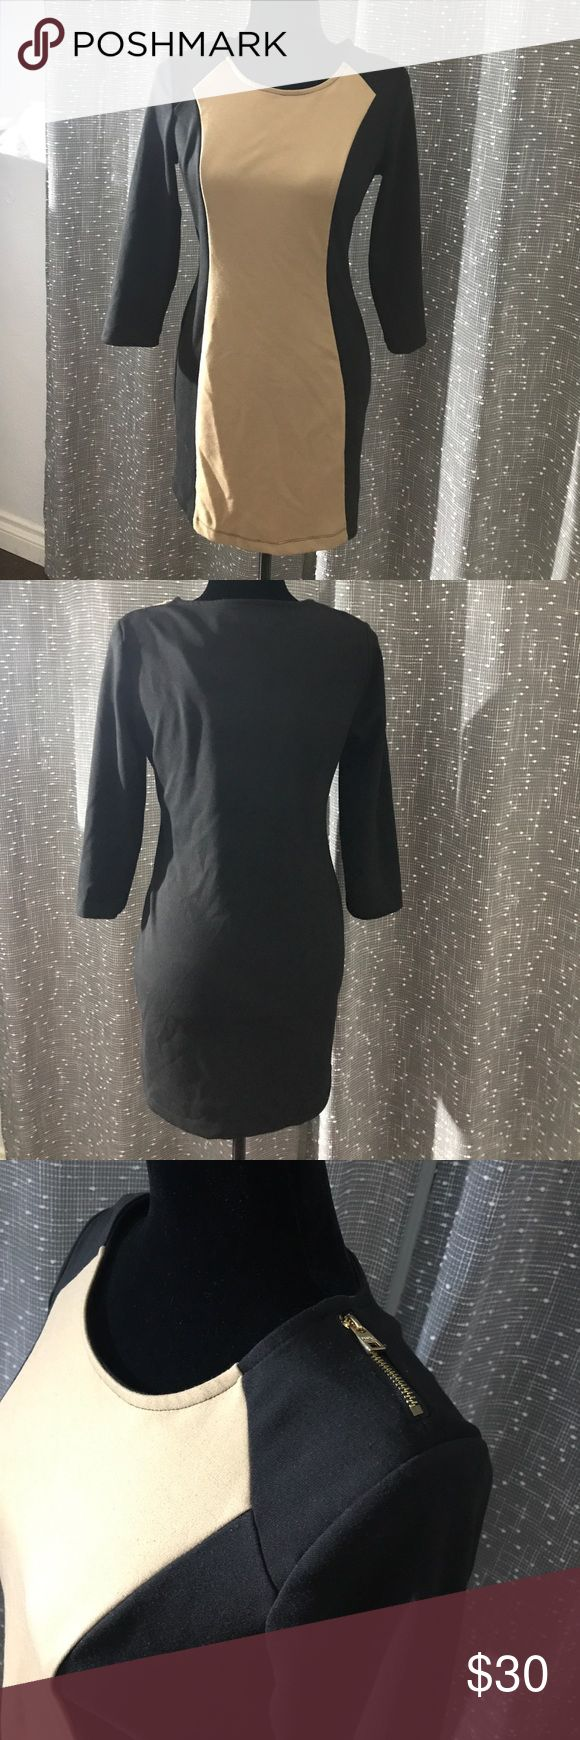 """MARC NEW YORK BLACK/CAMEL COLOR DRESS Good condition some of the seam came of it is shown on the pictures but other then that it's good.  Measurements  Shoulders 15"""" Chest 18"""" Length from shoulders to bottom is 31 1/2"""" Great for a night out or a holiday party. Andrew Marc Dresses Long Sleeve"""